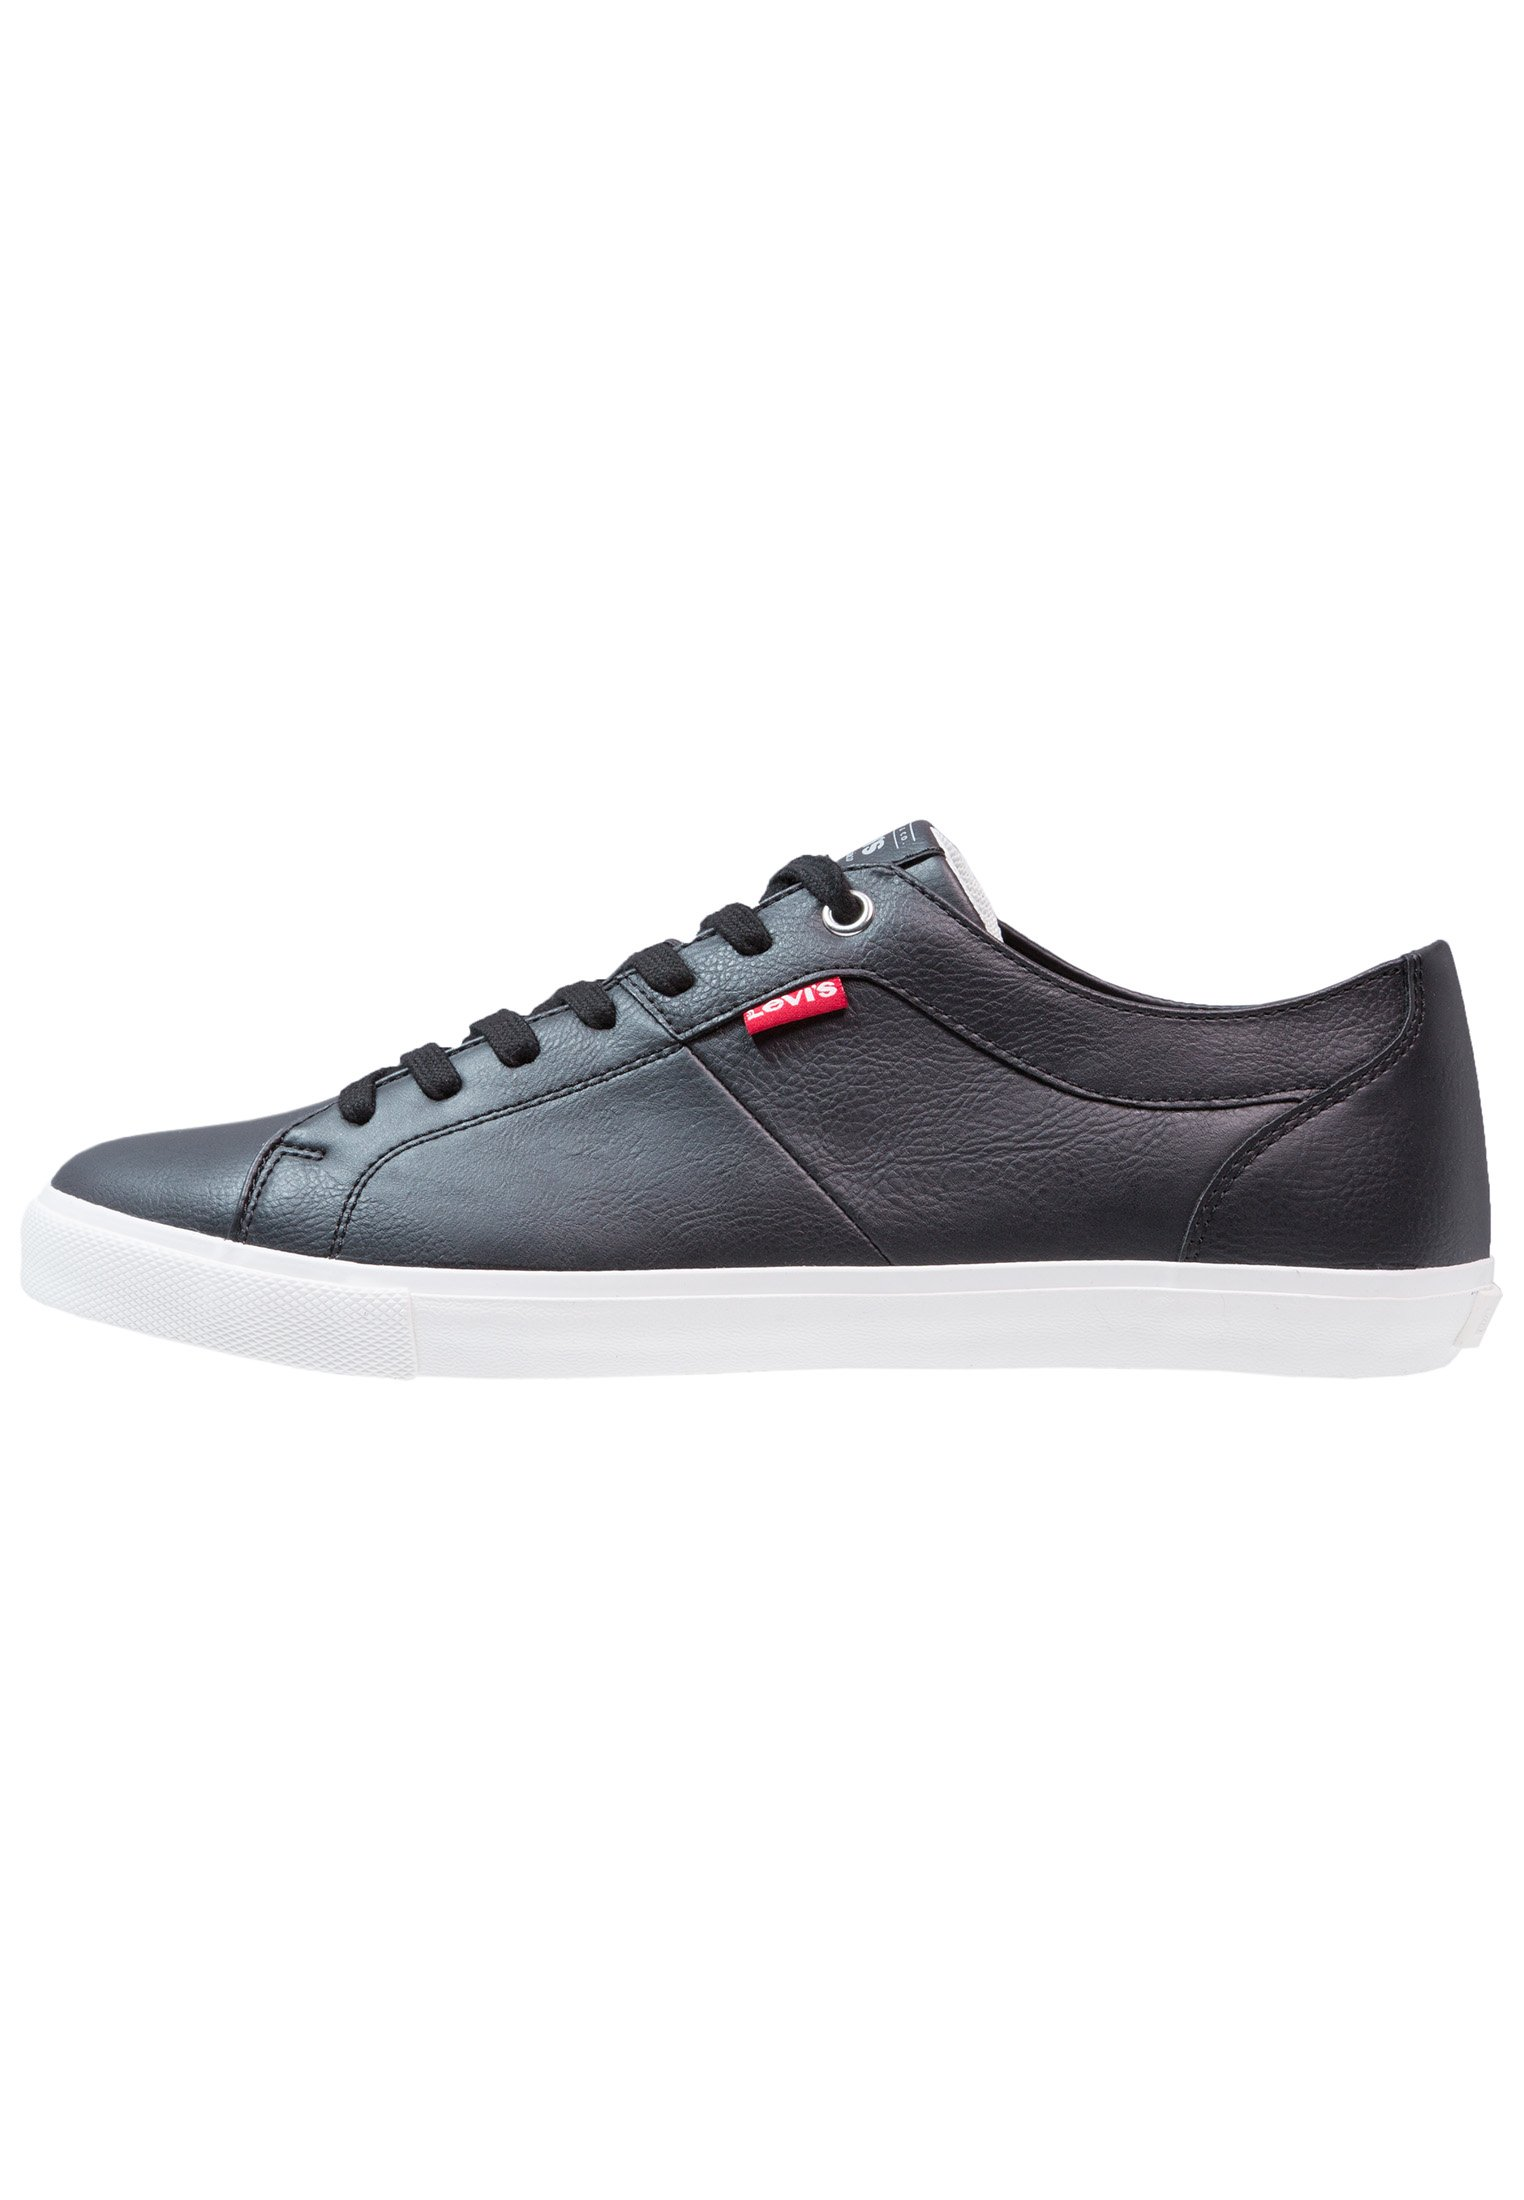 WOODS Sneakers regular black